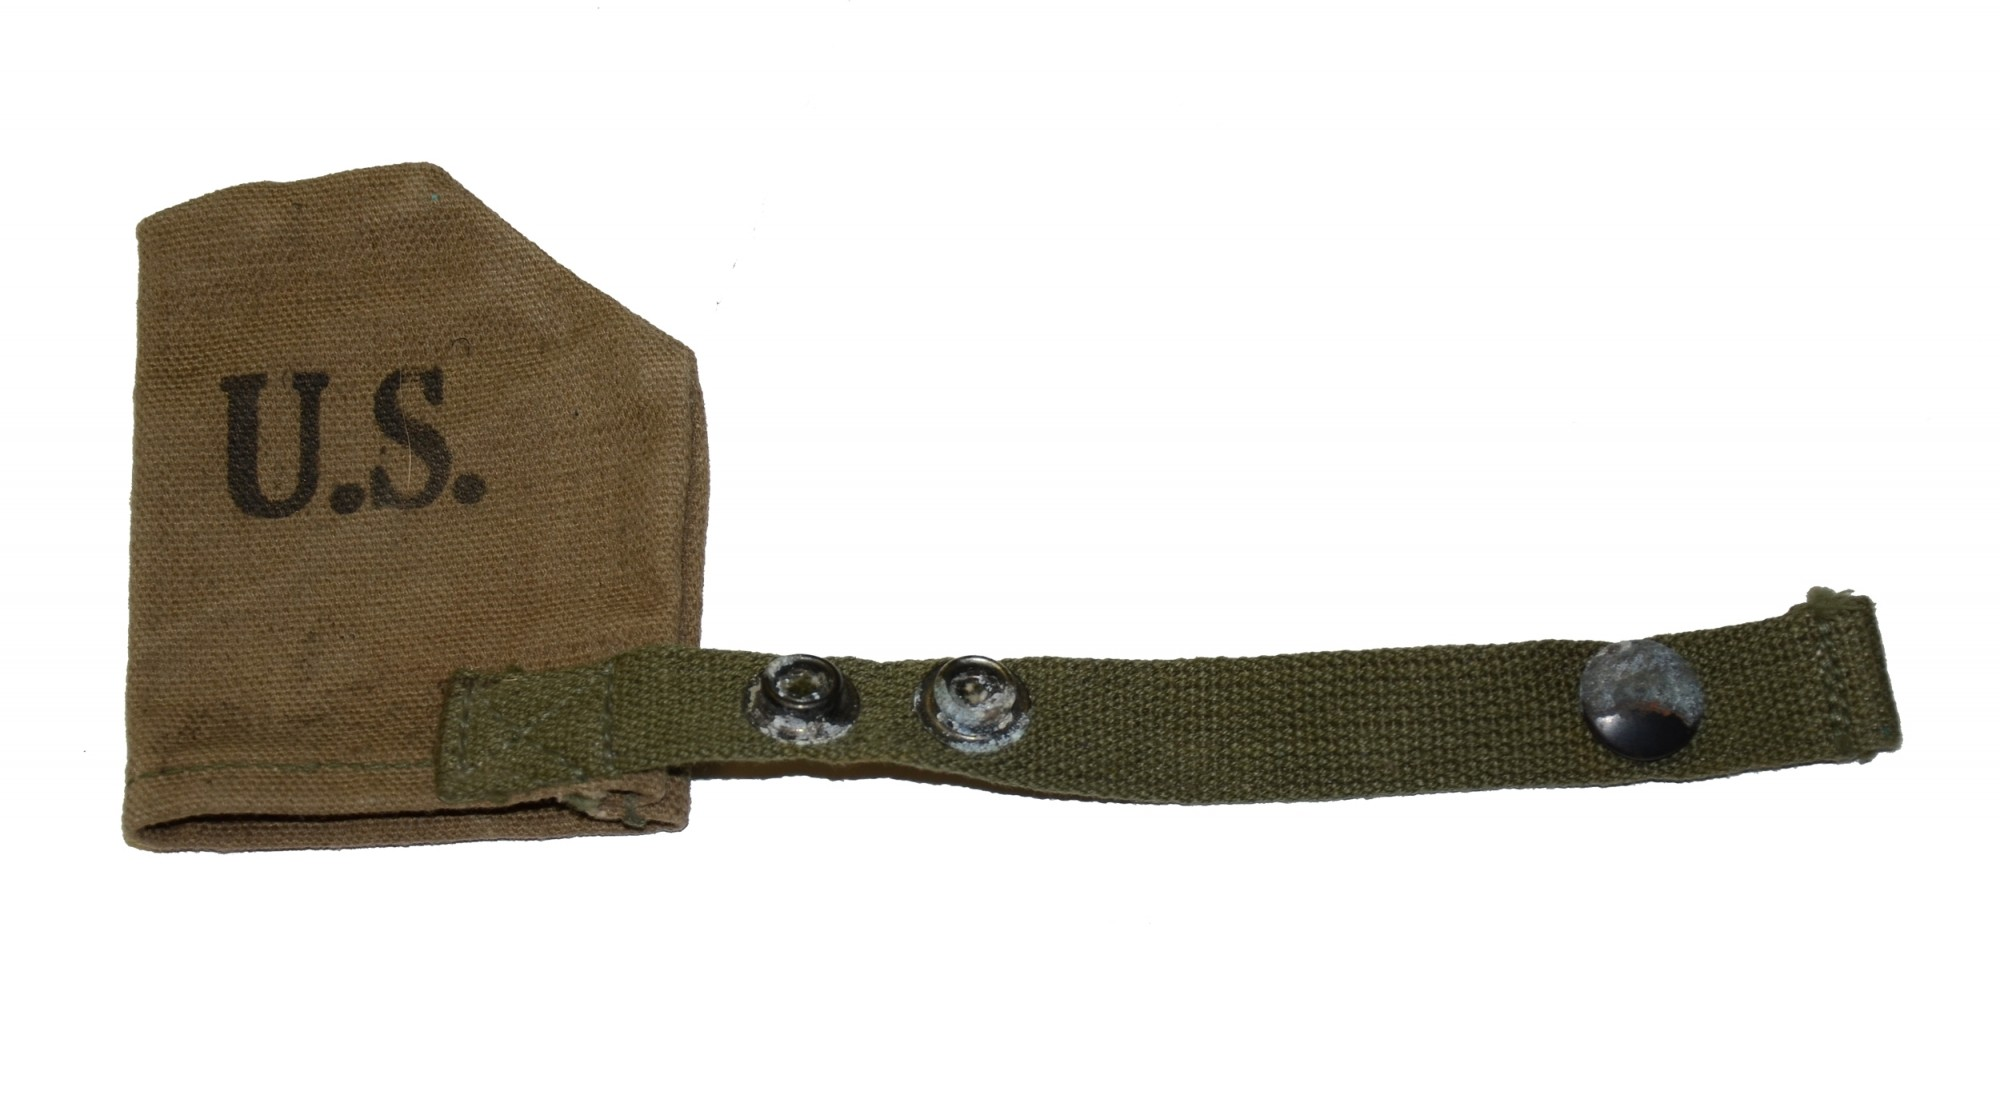 1944 DATED M-1 MUZZLE COVER